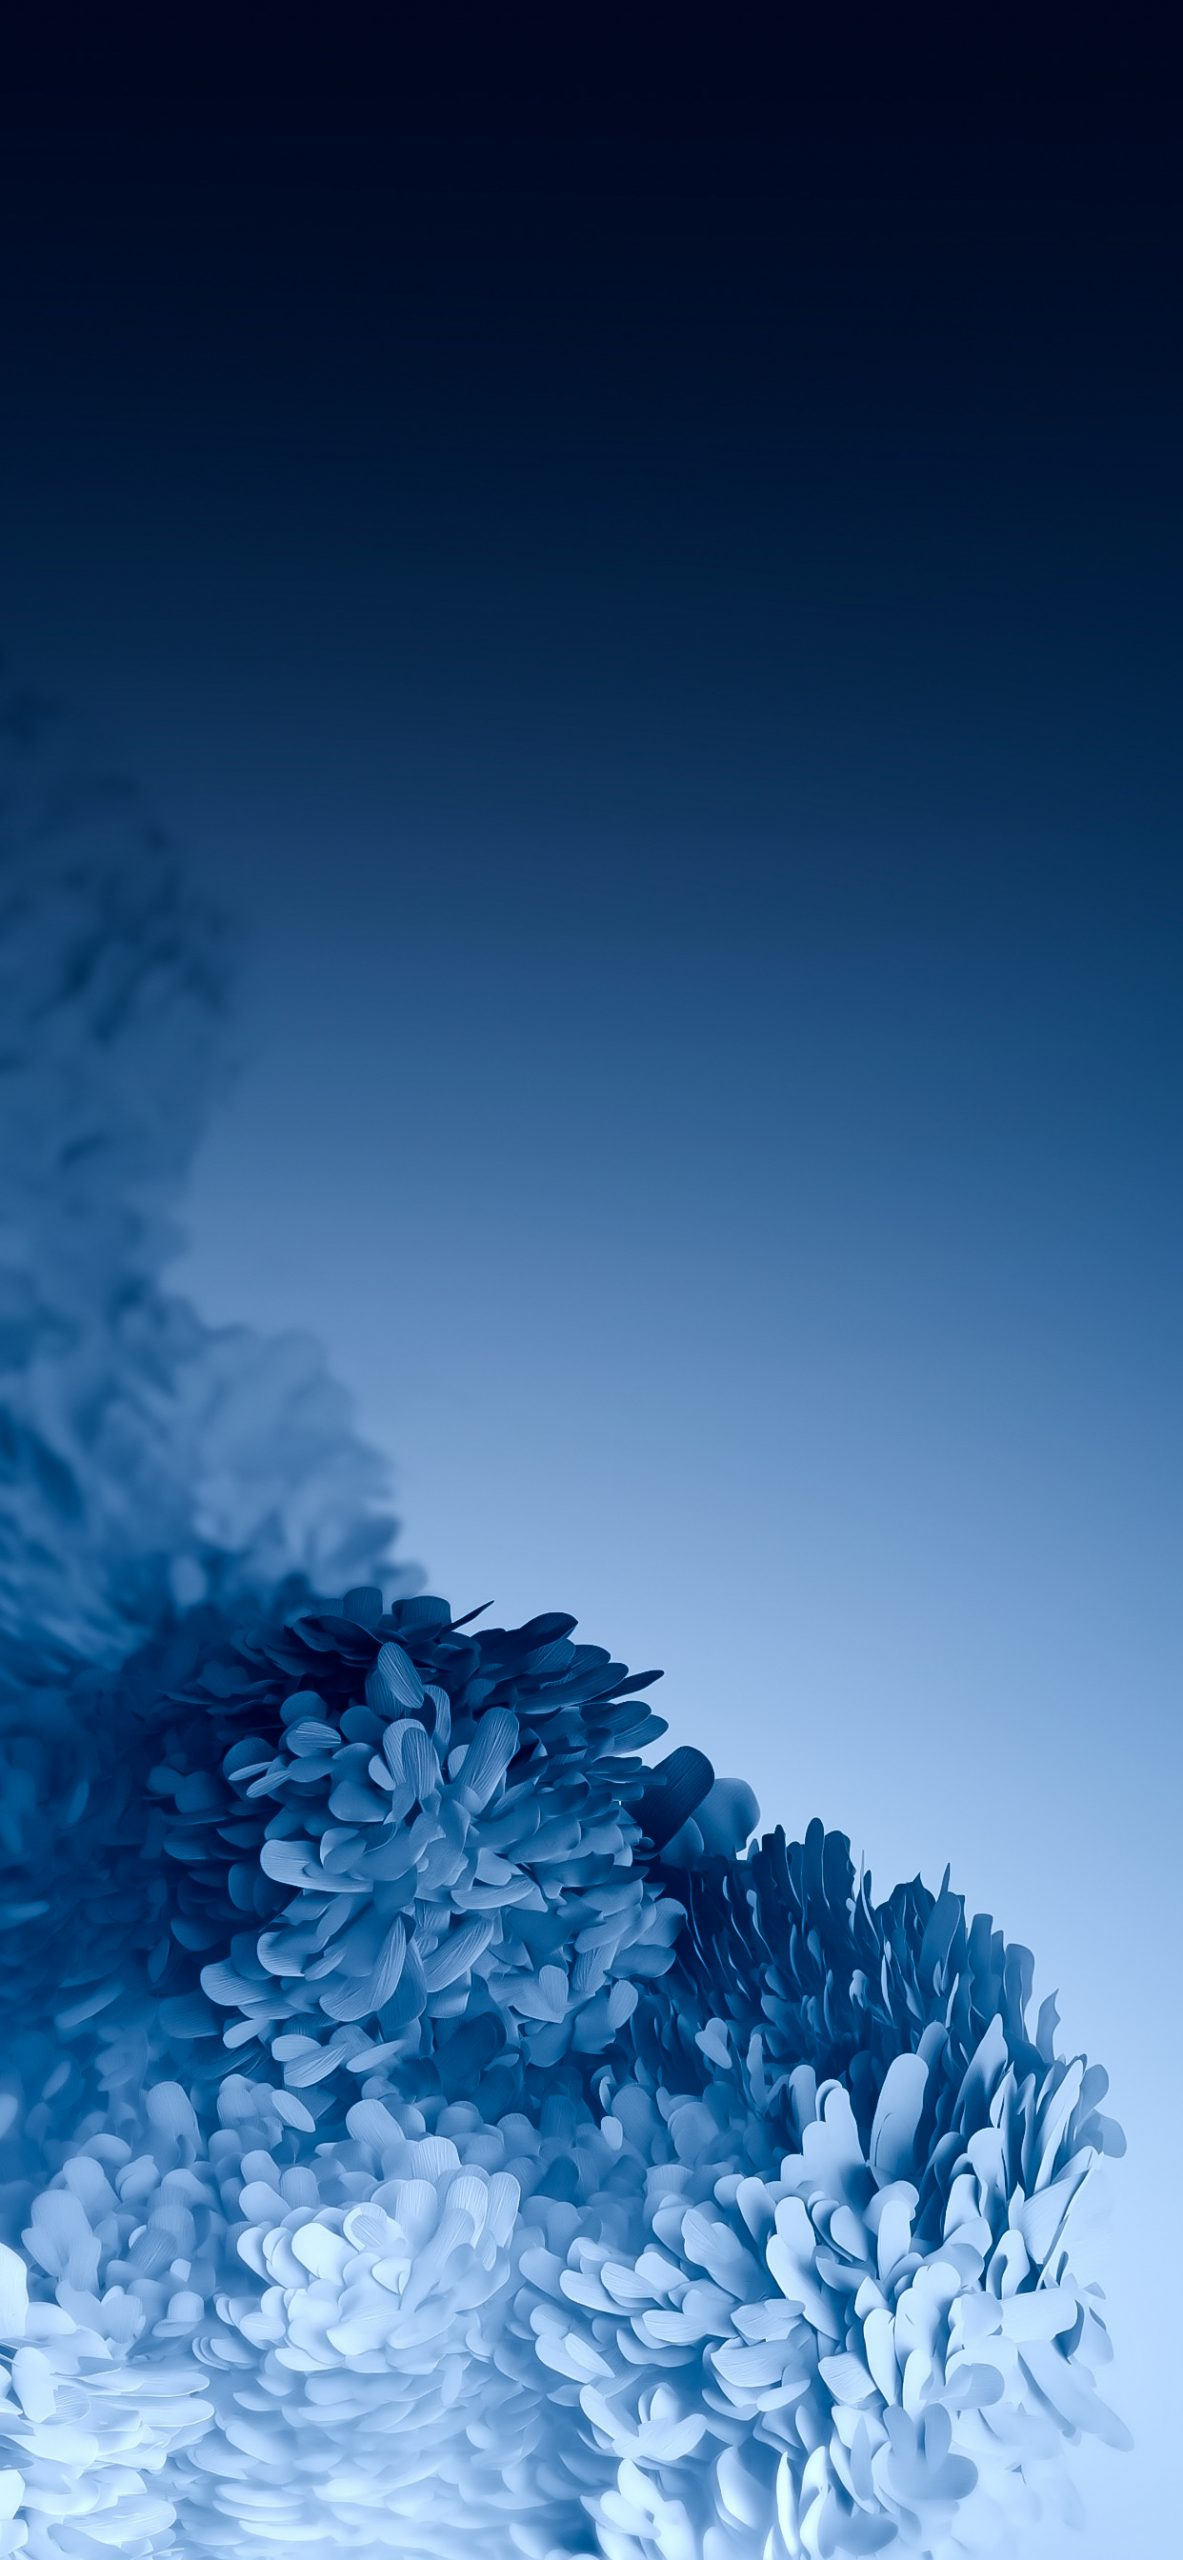 Samsung Galaxy S20 wallpapers iPhone mods